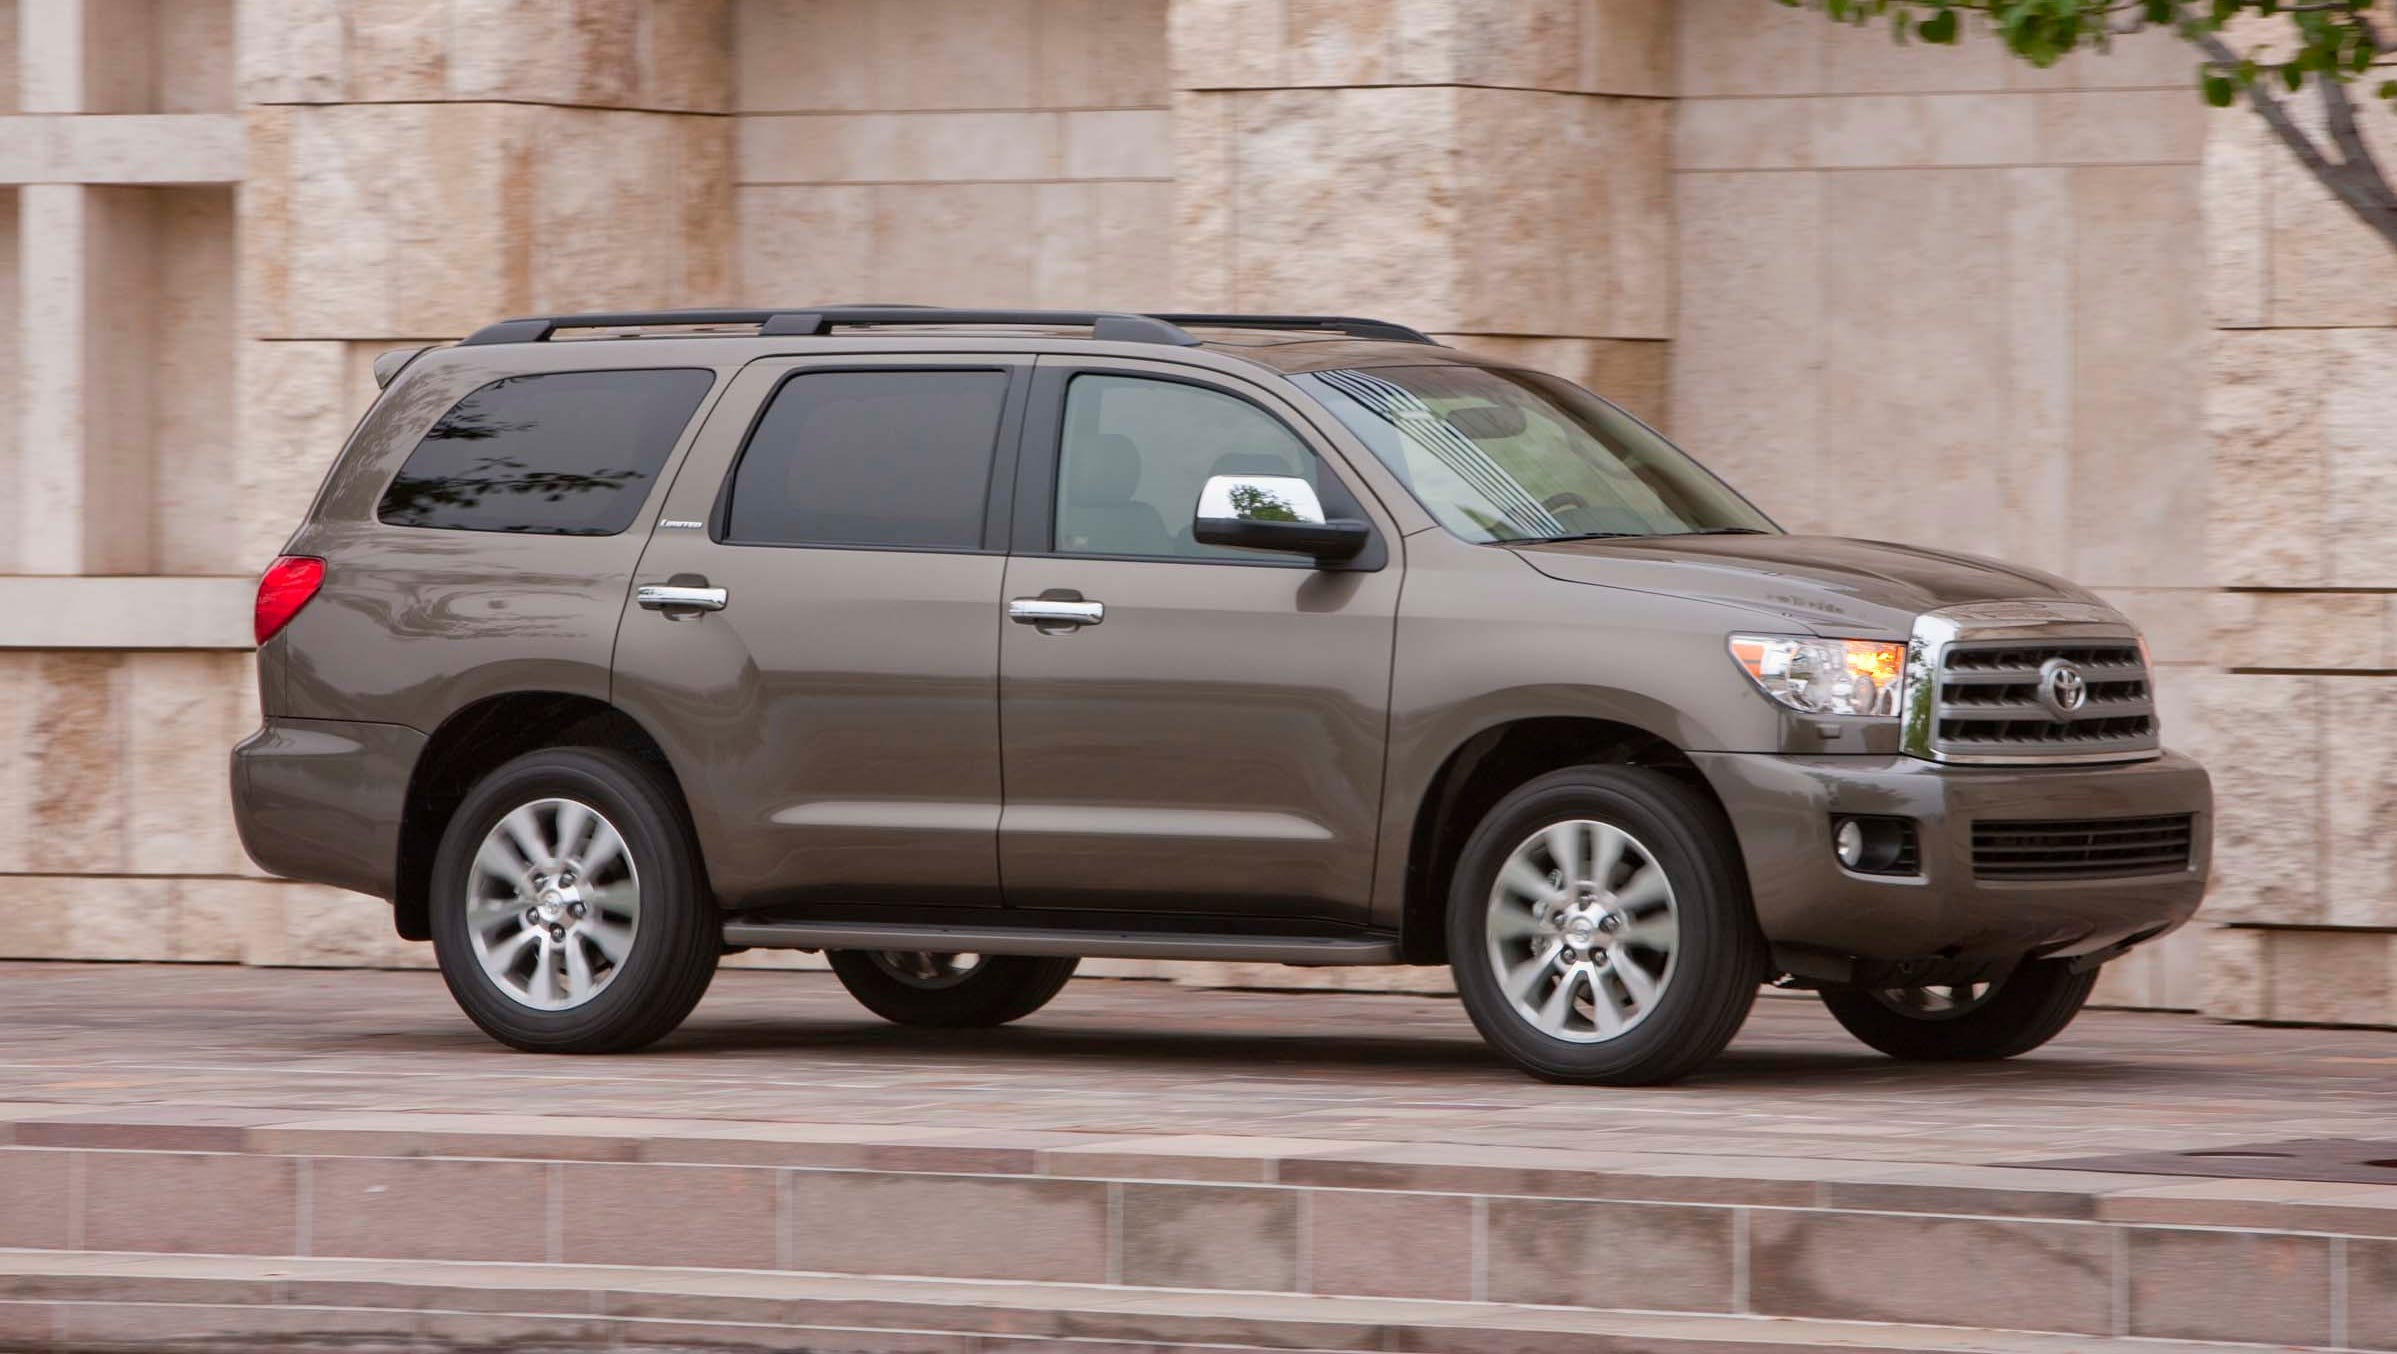 Full Size Suvs Most Likely To Make It To 200 000 Miles Report Shows